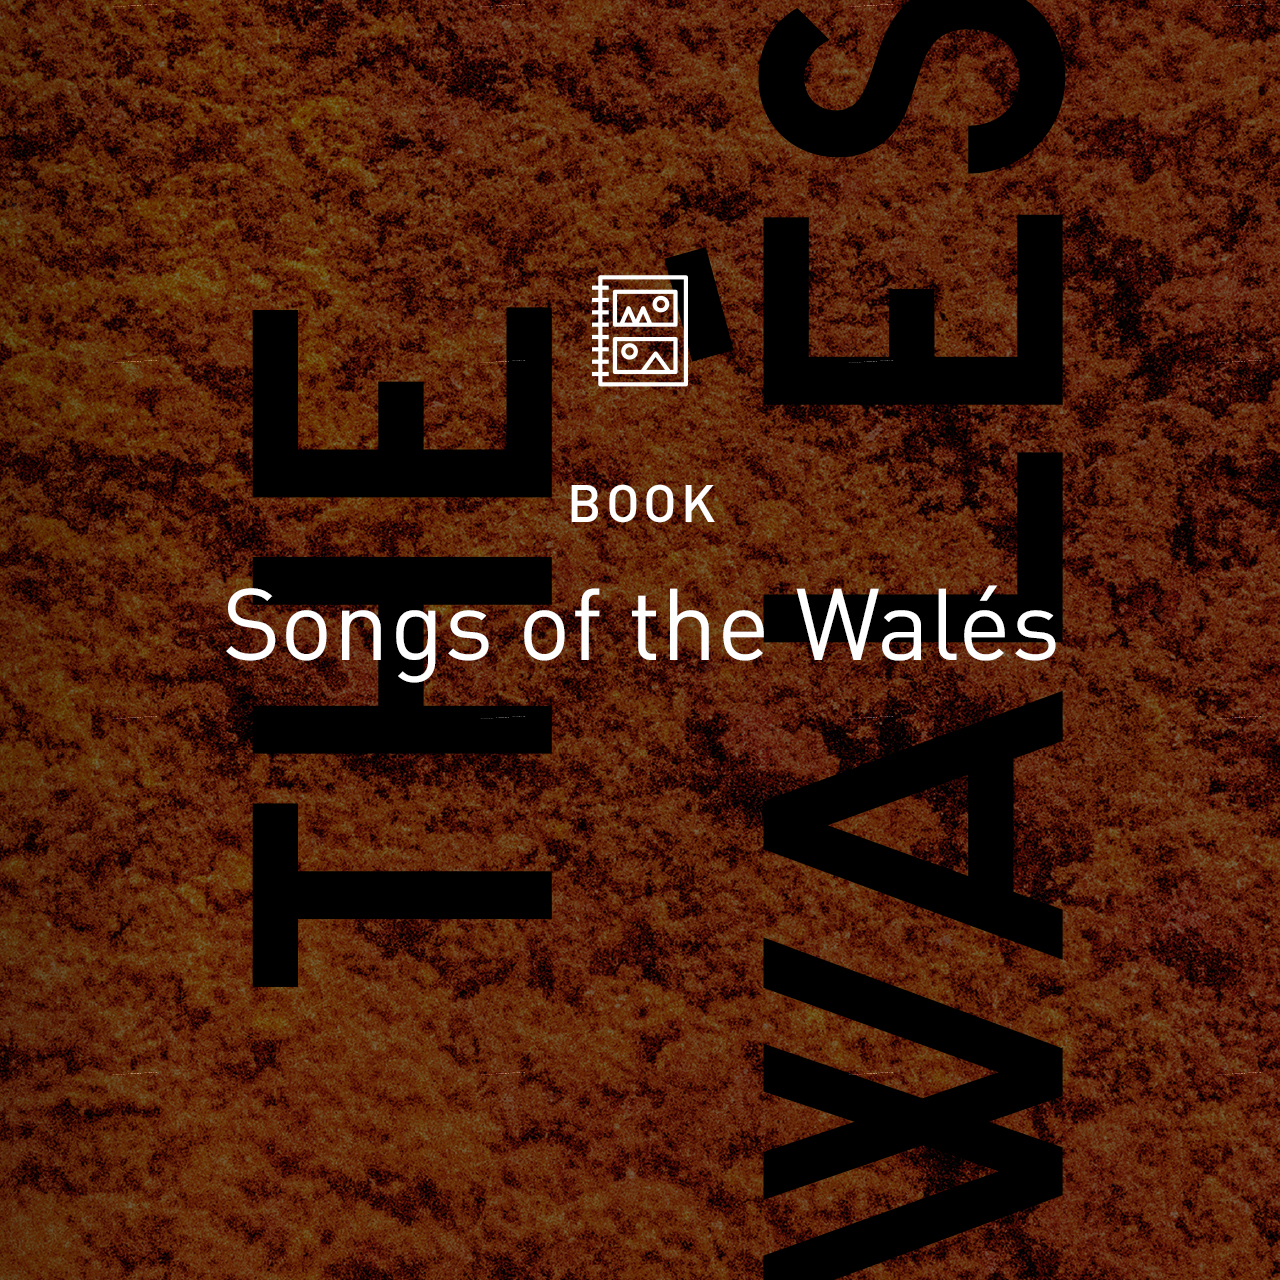 new_c_Songs_of_the_Walés_-_Books